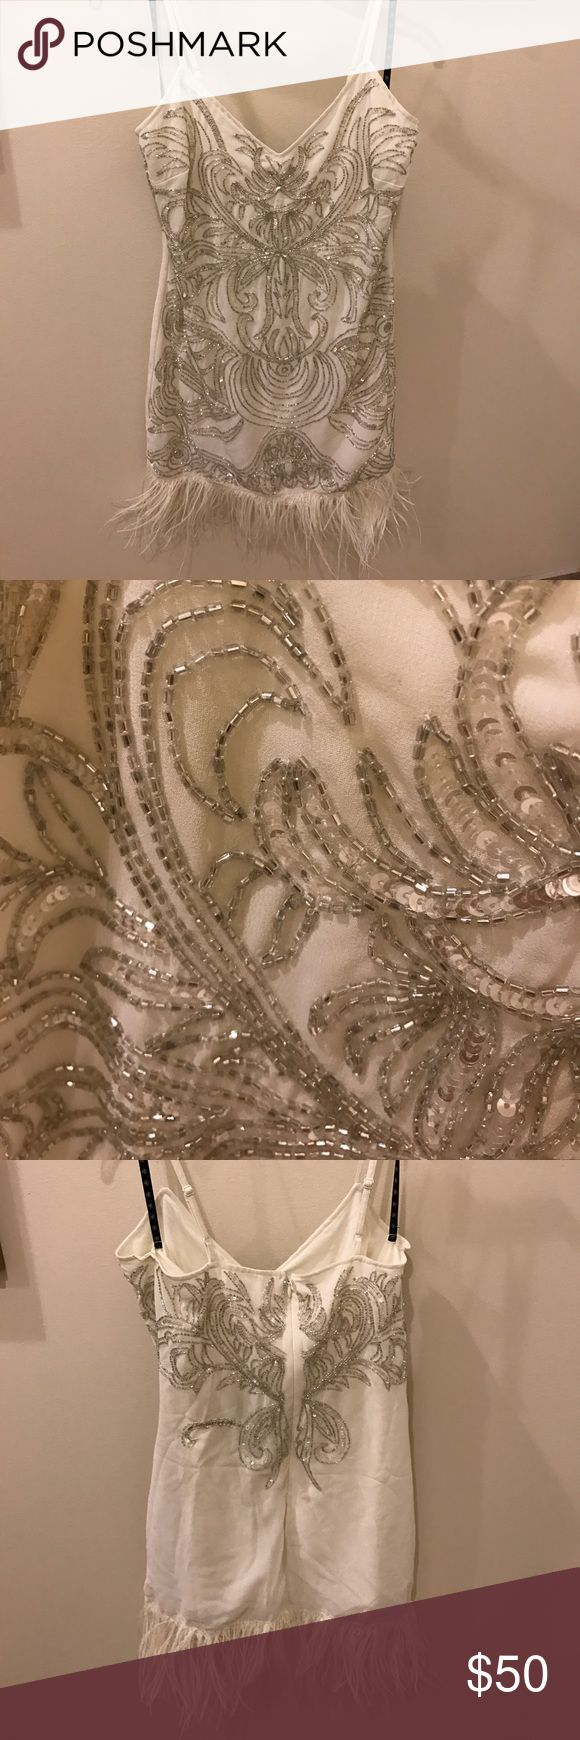 MISSGUIDED white beaded dress with fur trim white dress, silver beading, white fur trim. has adjustable straps. NWT!!!!! Missguided Dresses Mini